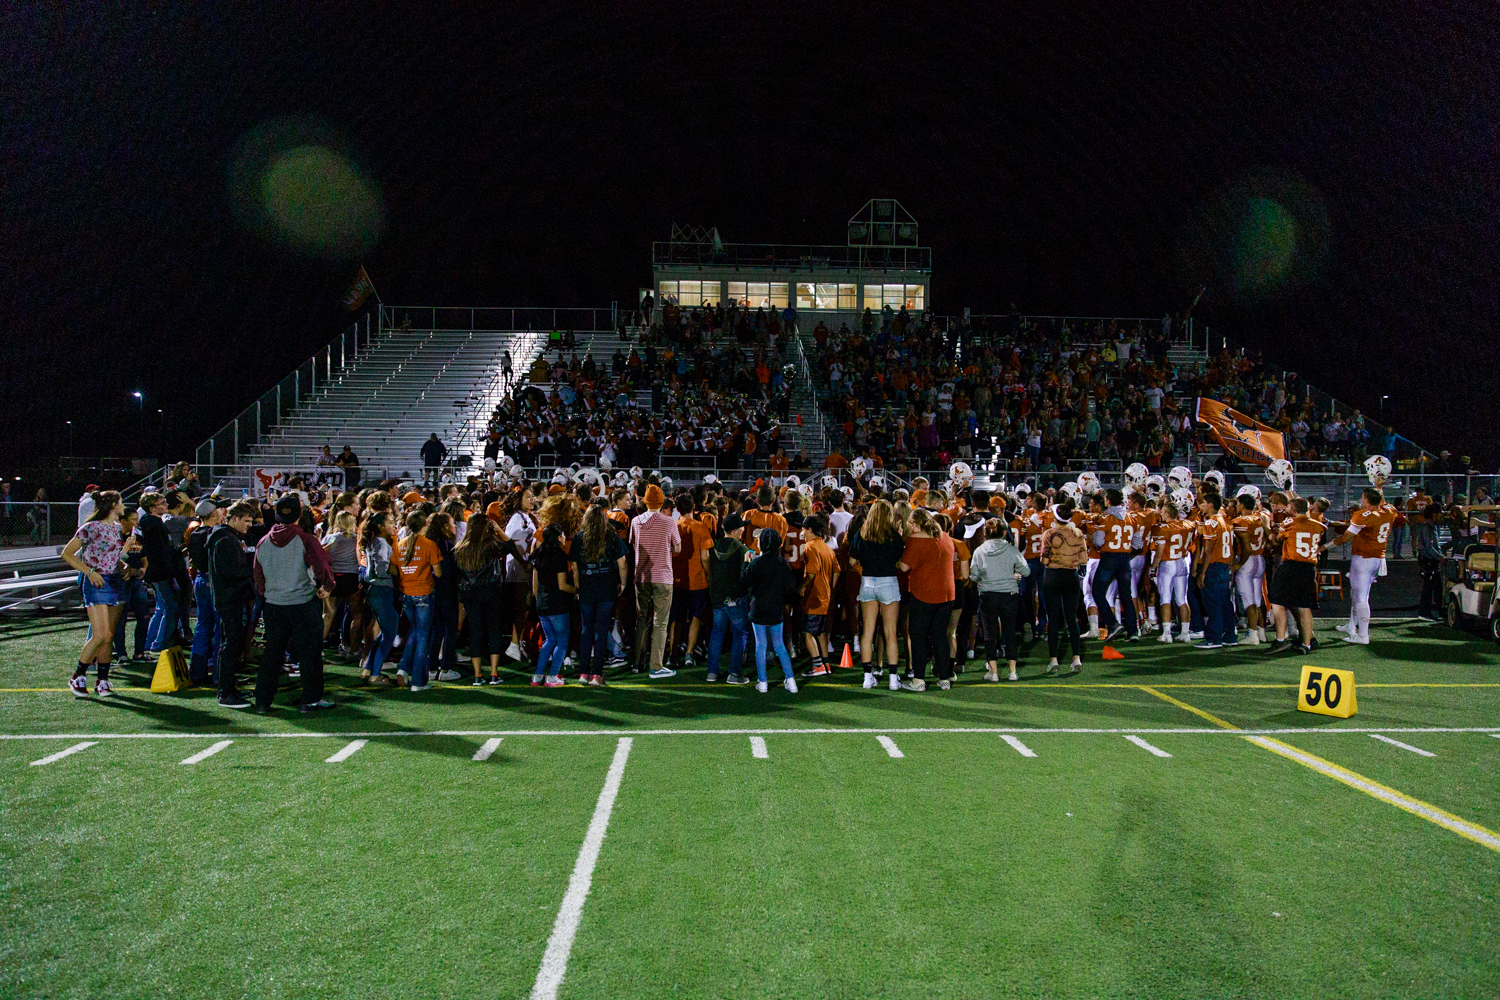 The+student+section+and+football+section+gather+on+the+field+together+as+the+band+plays+the+fight+song.